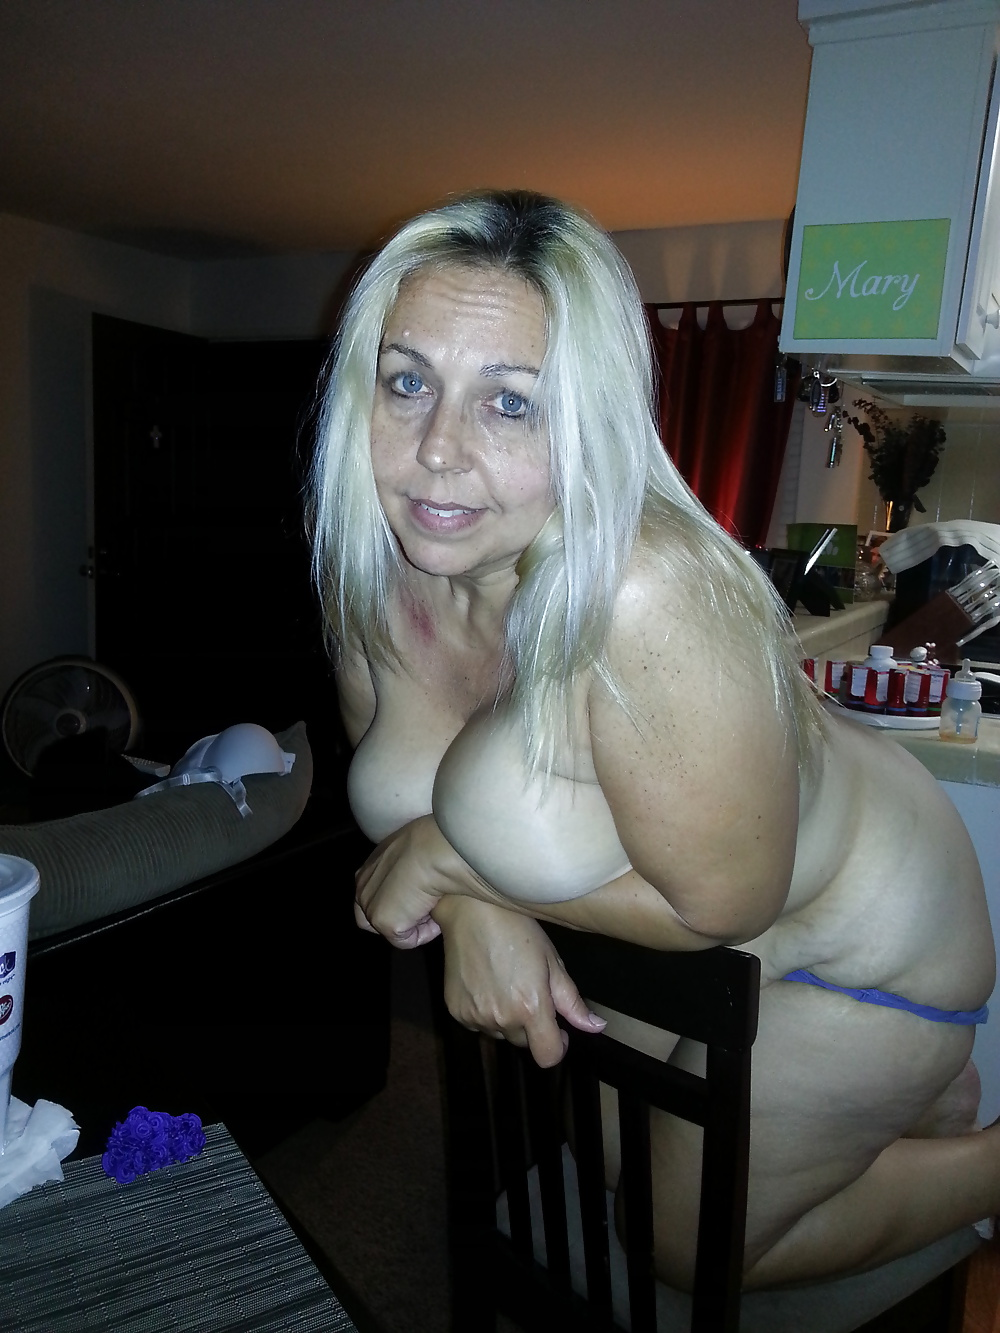 Big cock naked women